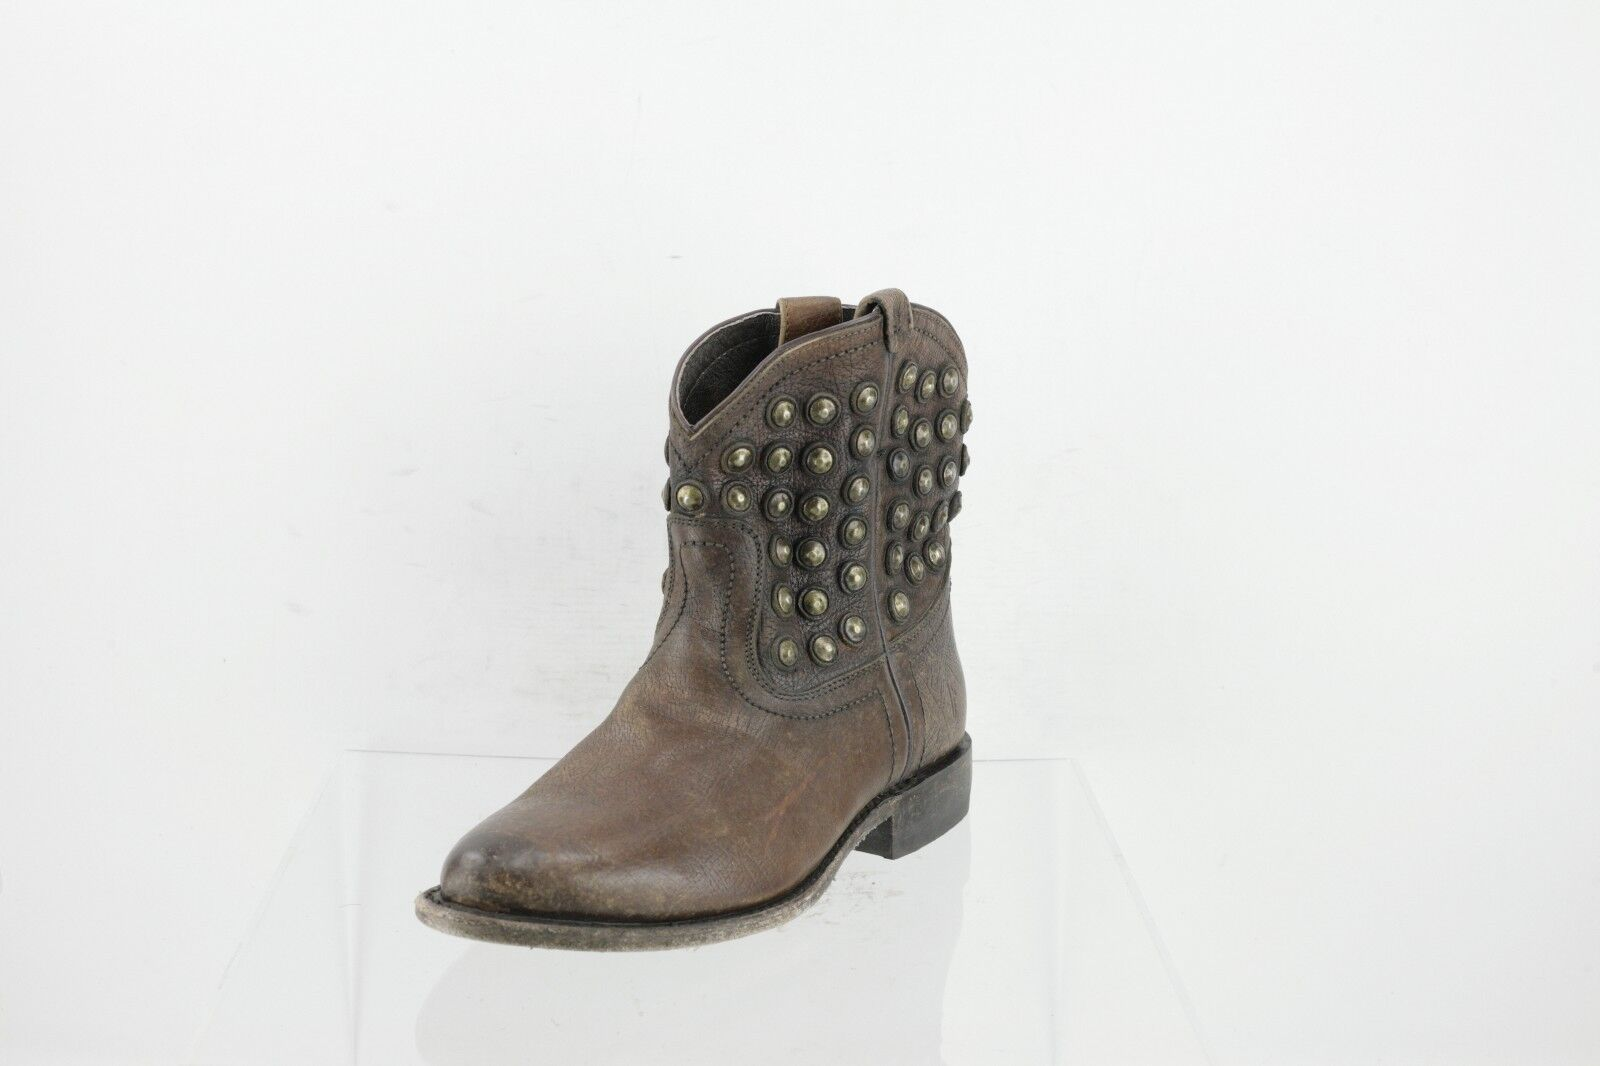 Frye 76684 Wyatt Brown Leather Mid-Calf Boots Women's Shoes Size 6.5 M